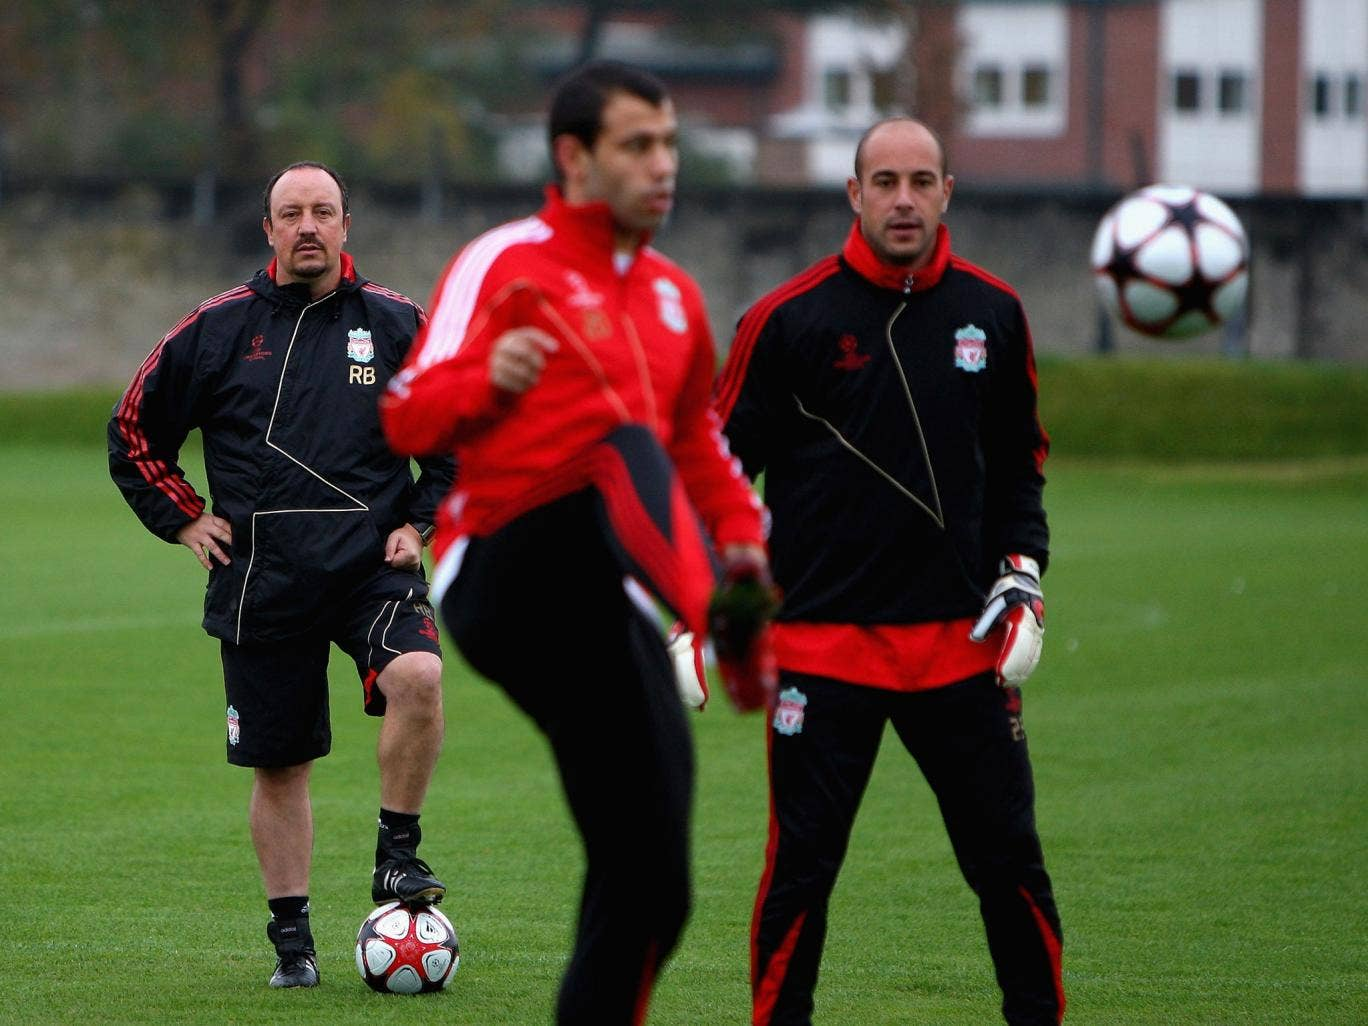 Watching Javier Mascherano and Pepe Reina during Liverpool training in 2009. A conversation with Mascherano persuaded him to join Liverpool from West Ham during the January transfer window, while Reina is now enjoying a new lease of life on loan at Napoli